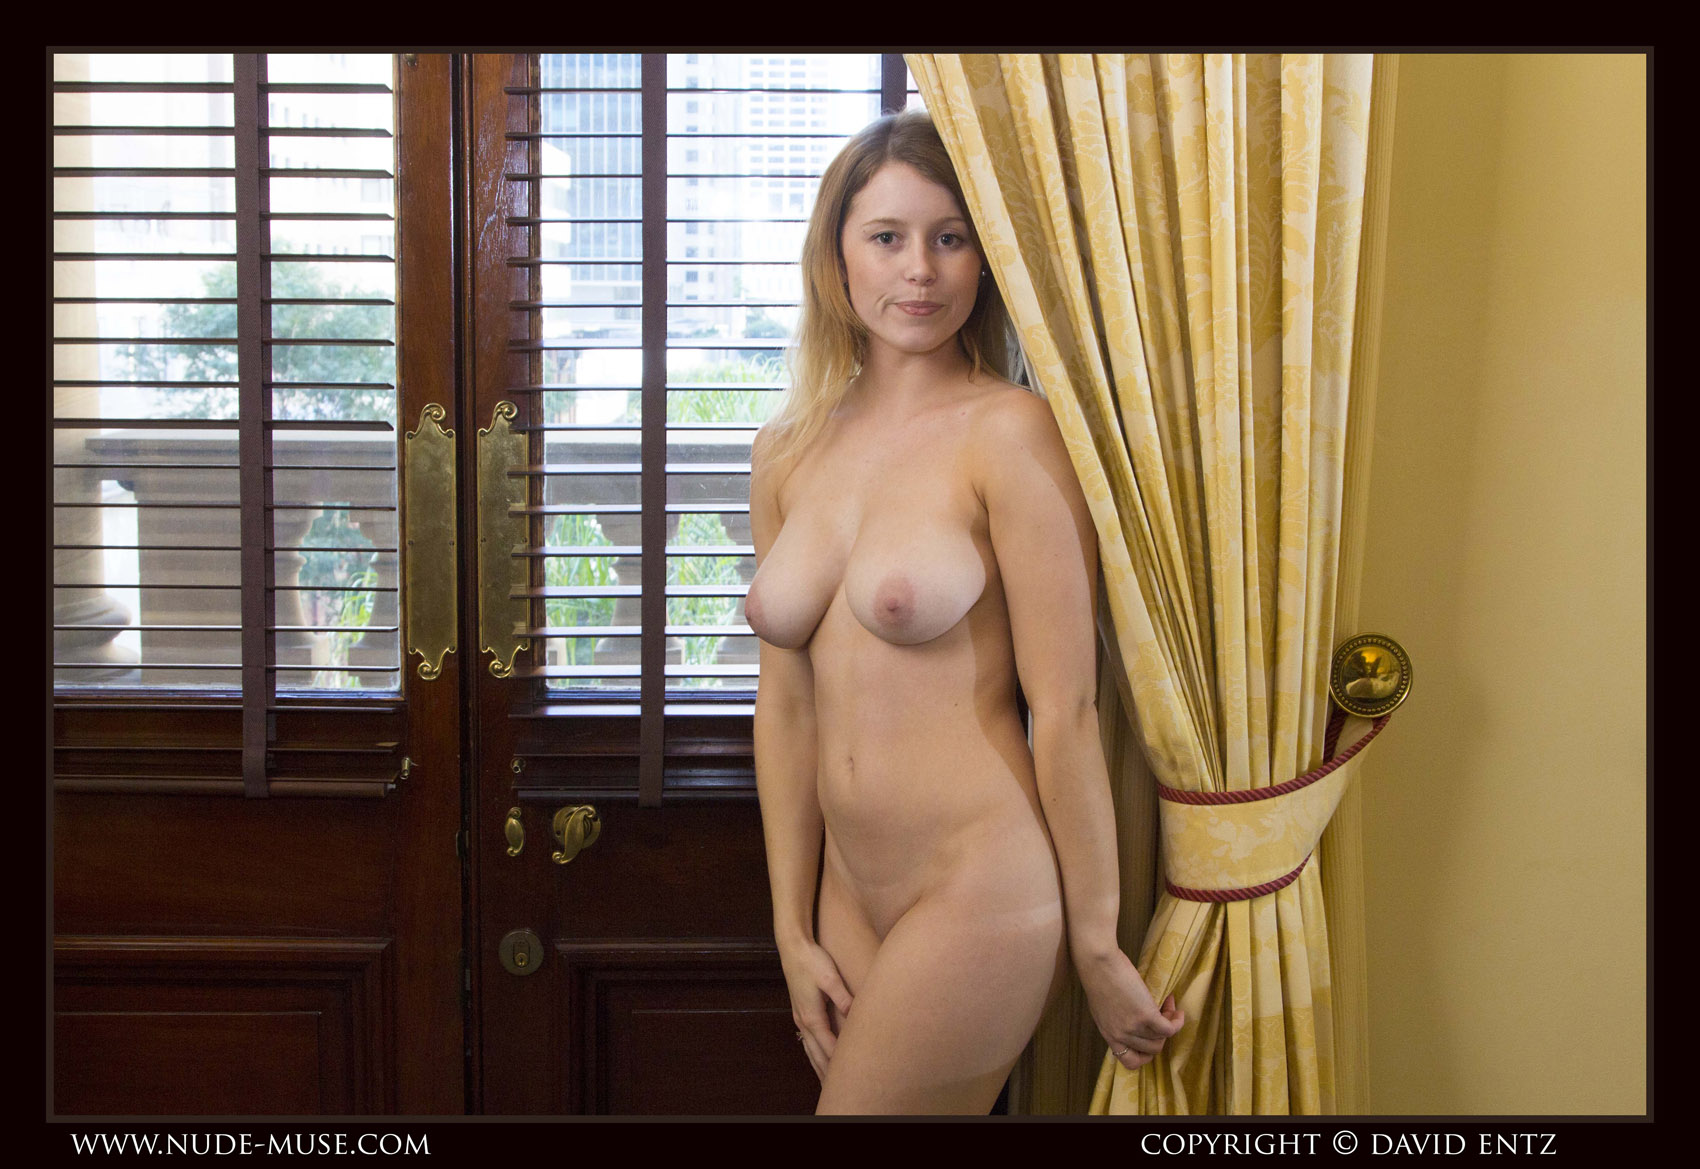 Misty Day Window Nude Muse 4-8224